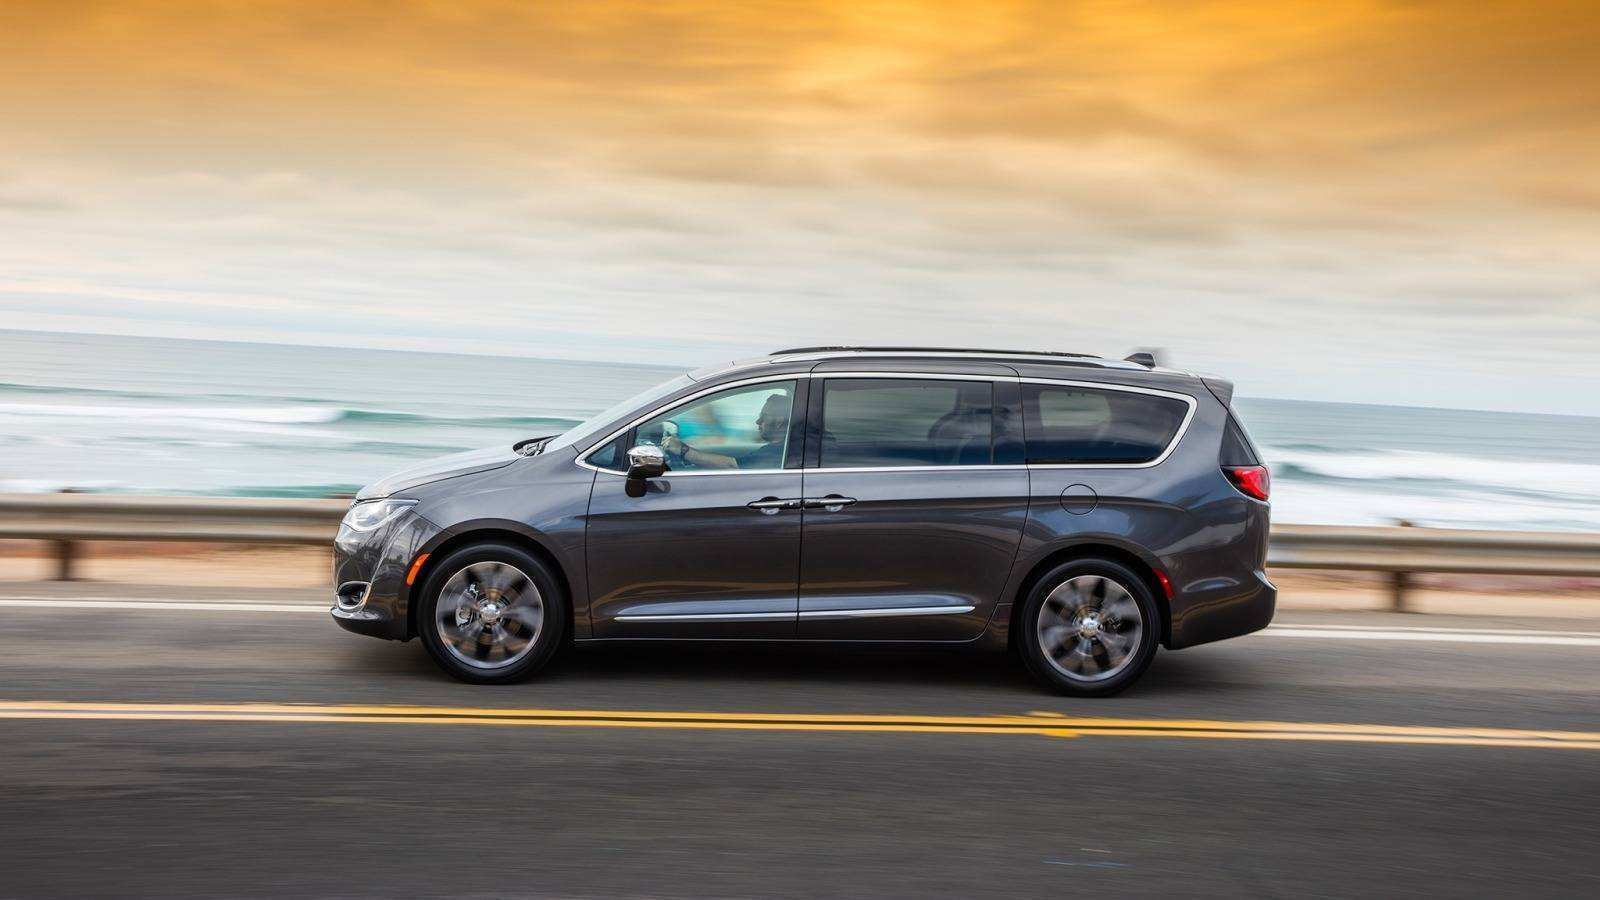 17 Gallery of 2019 Minivans Rumors with 2019 Minivans